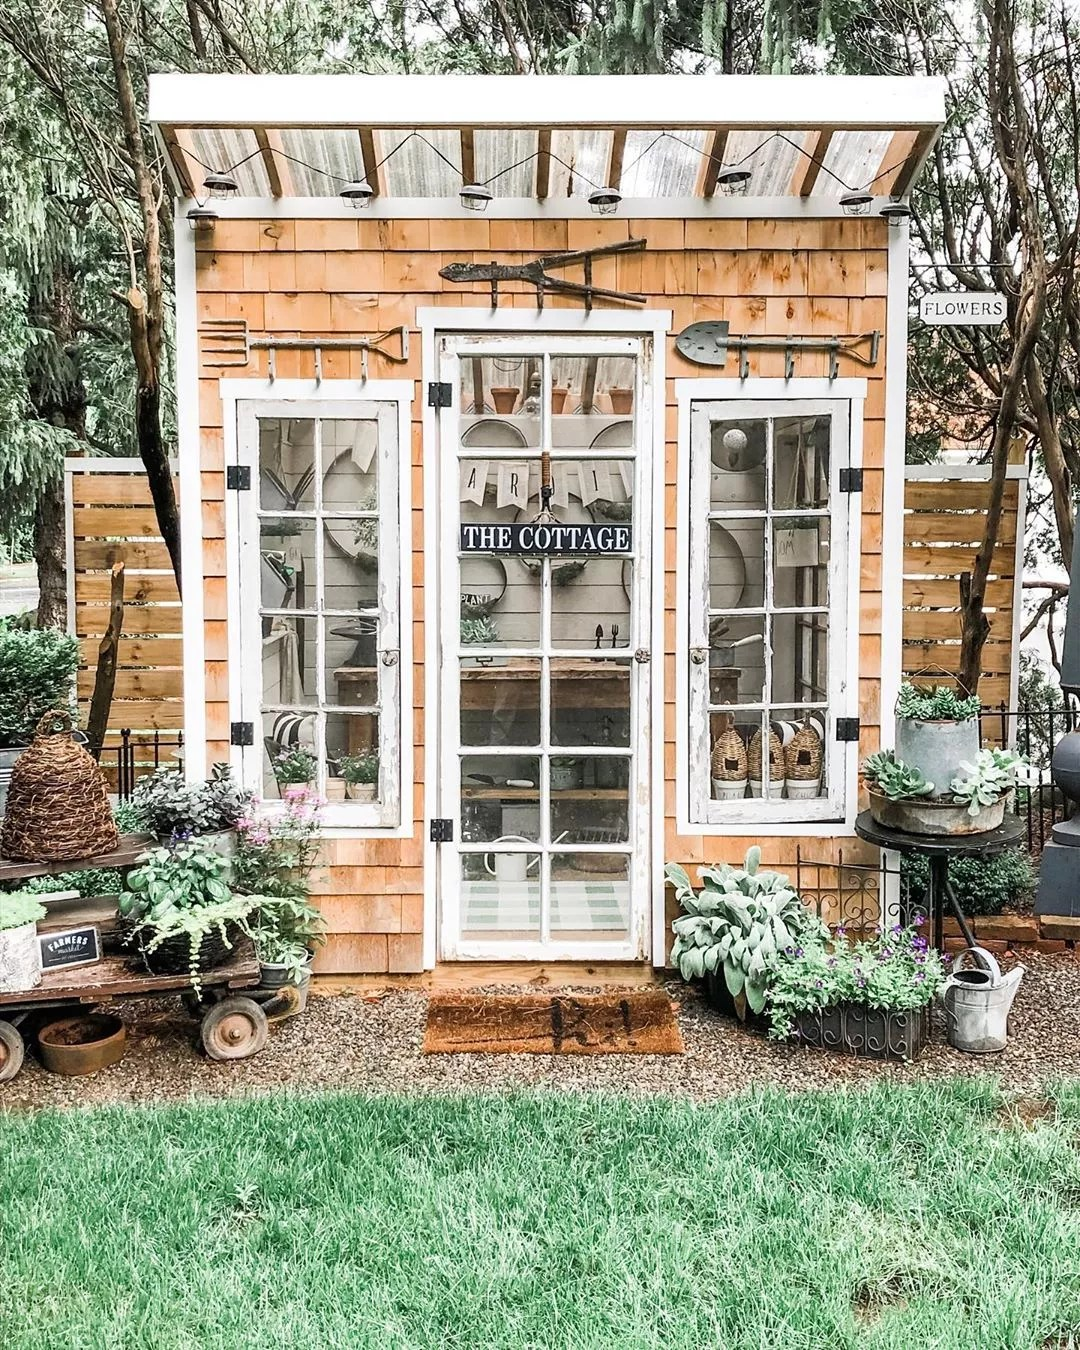 Small Wooden Shingle Sided Garden She Shed. Photo by Instagram user @cottageandbloom